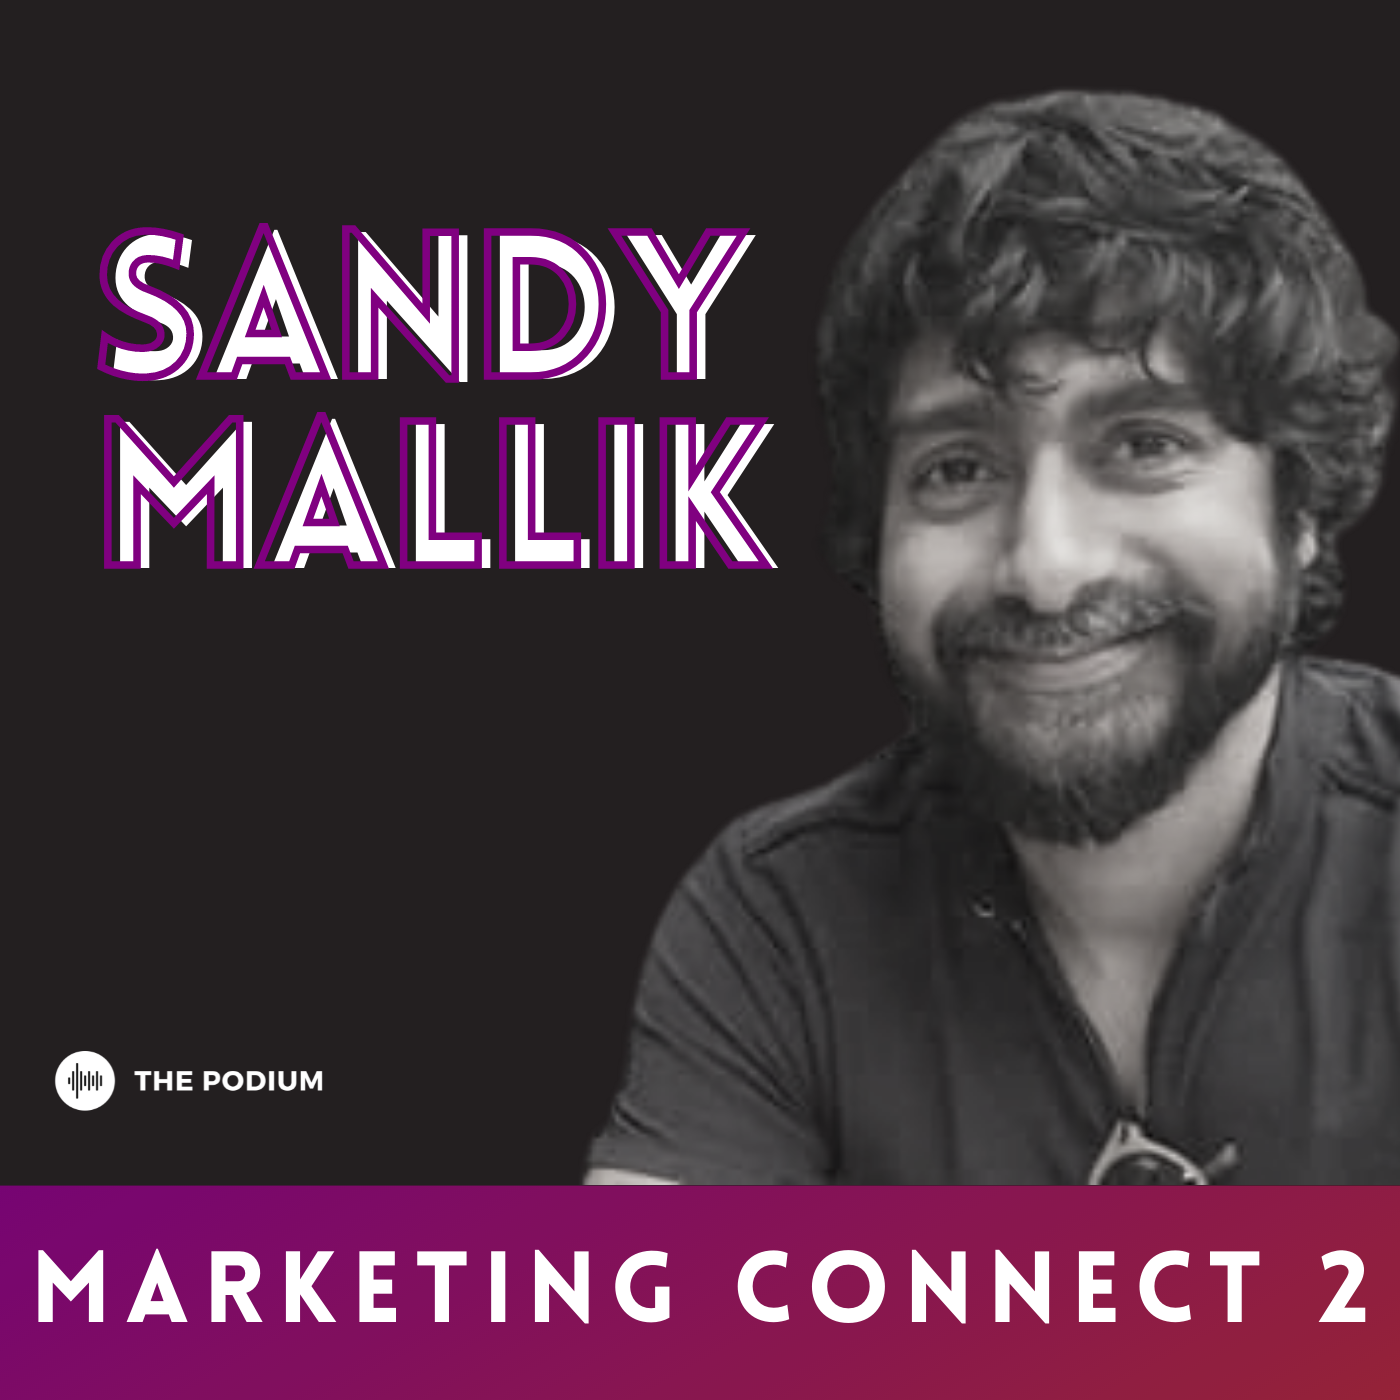 Artwork for podcast Marketing Connect